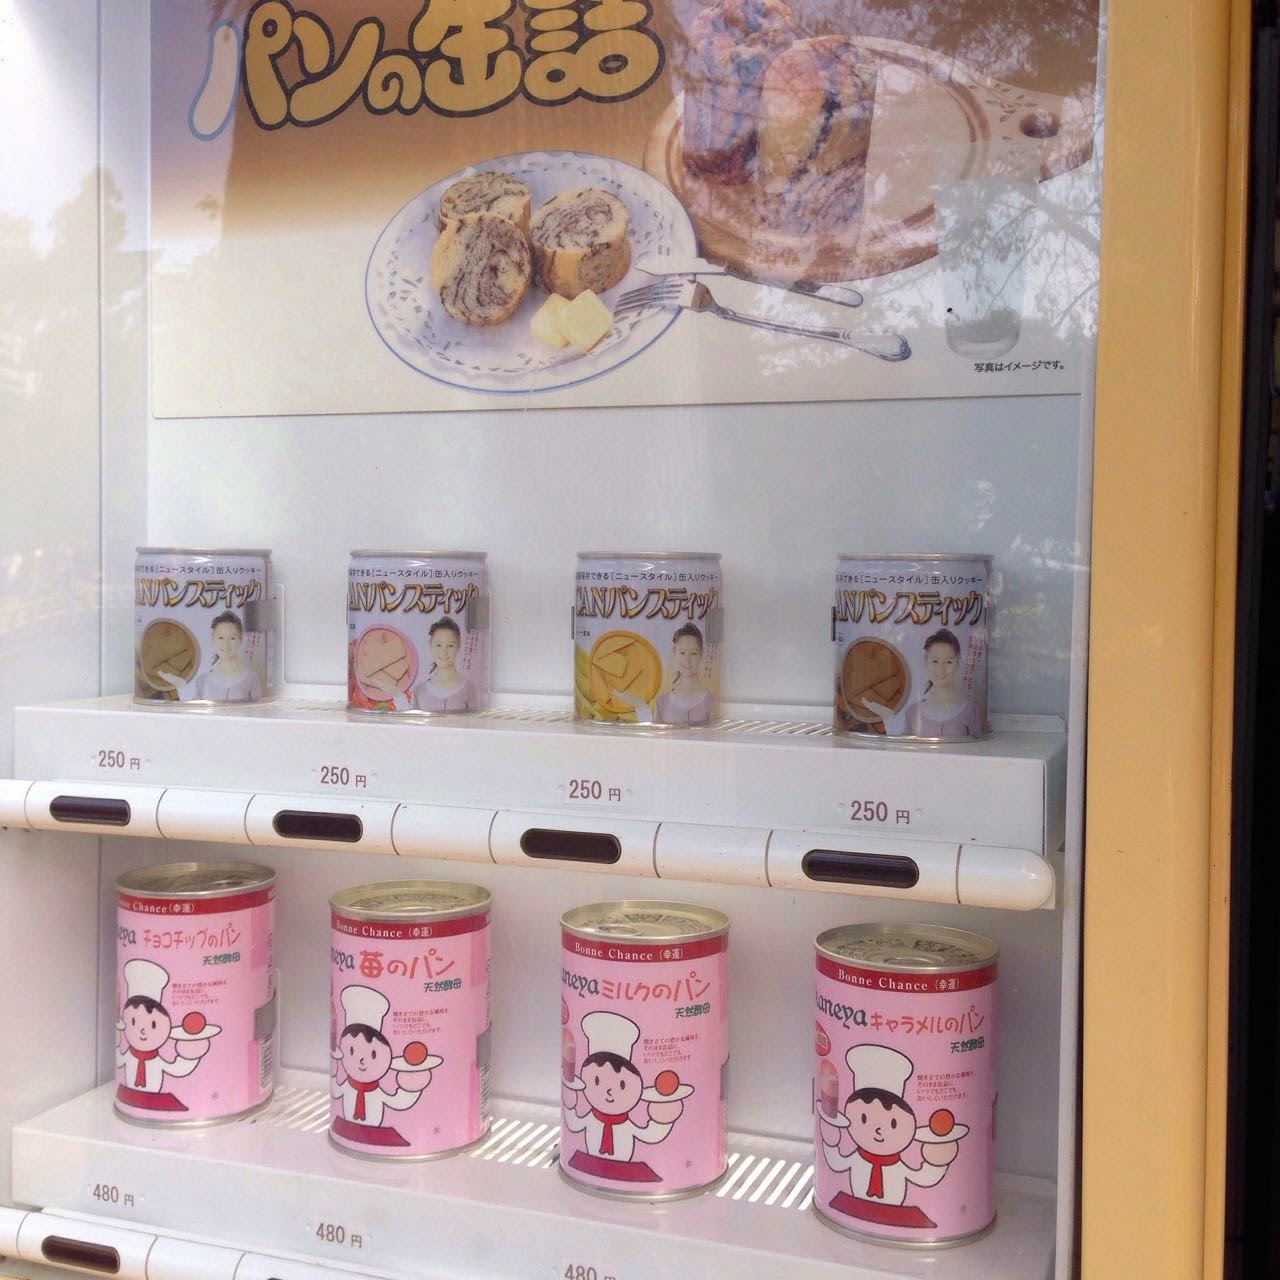 Japanese Canned Bread Vending Machine パンの缶詰自動販売機